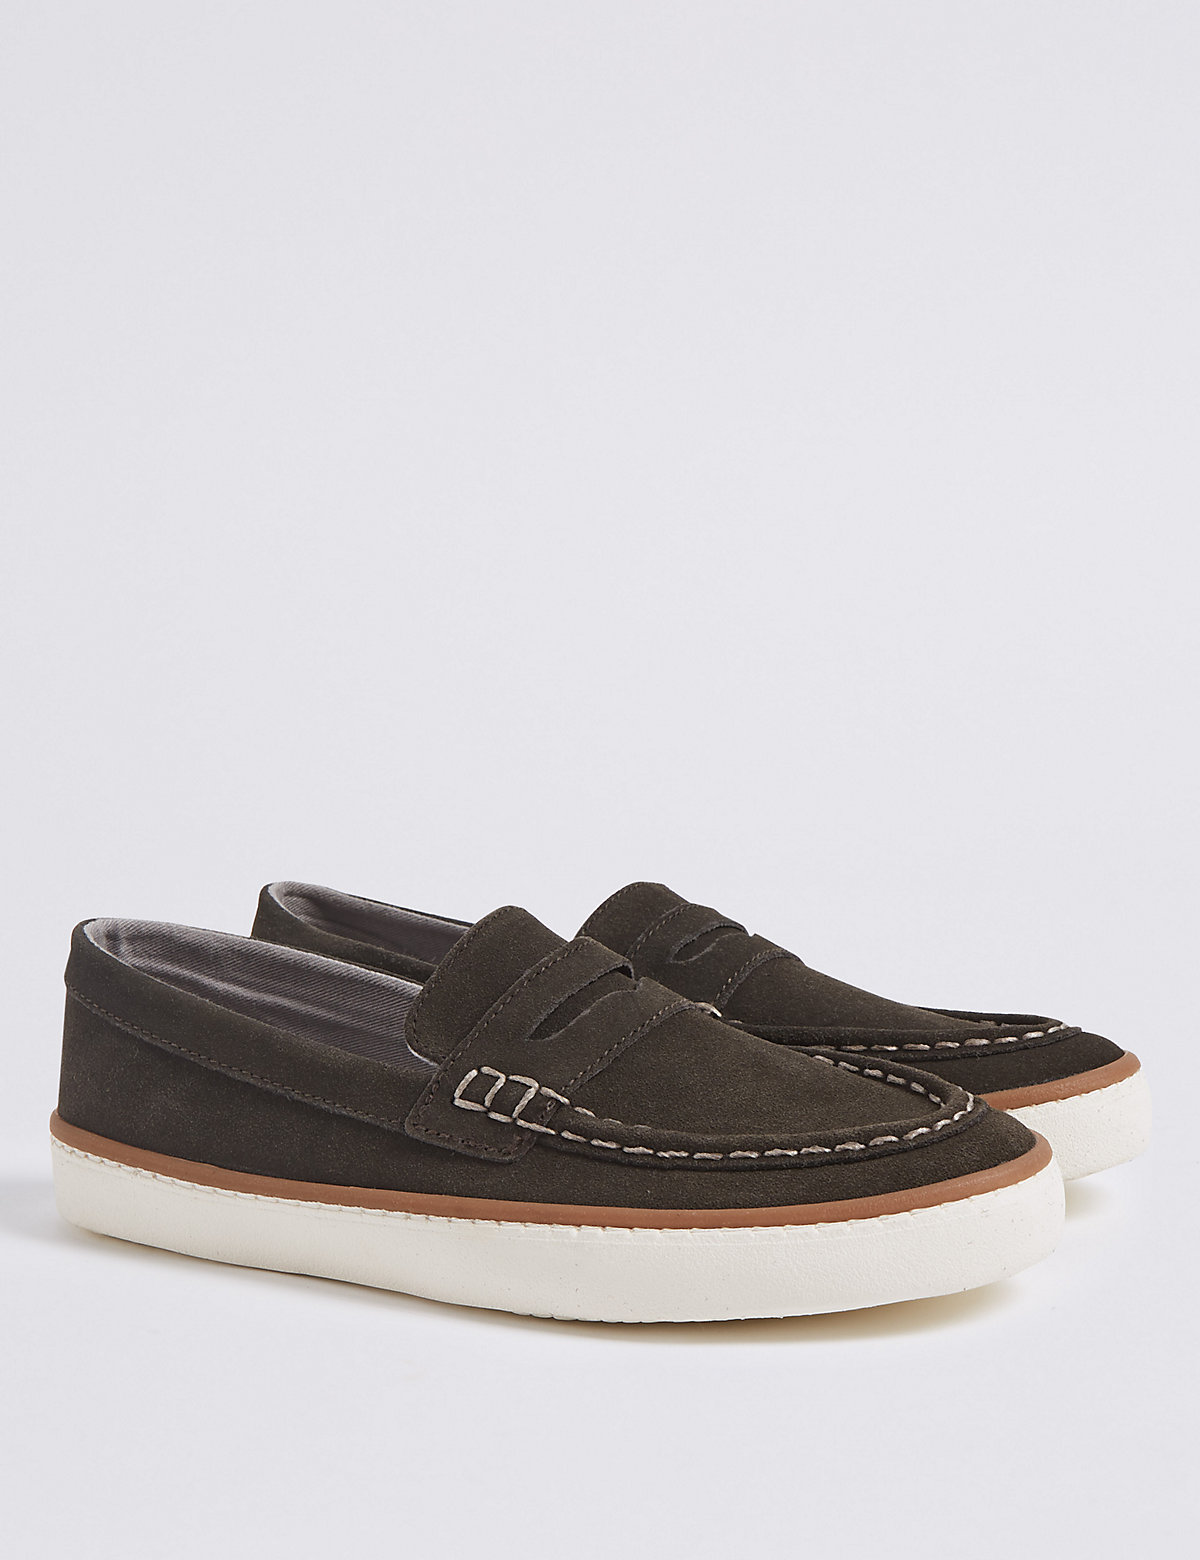 Image of Kids' Suede Loafer Slip-on Shoes